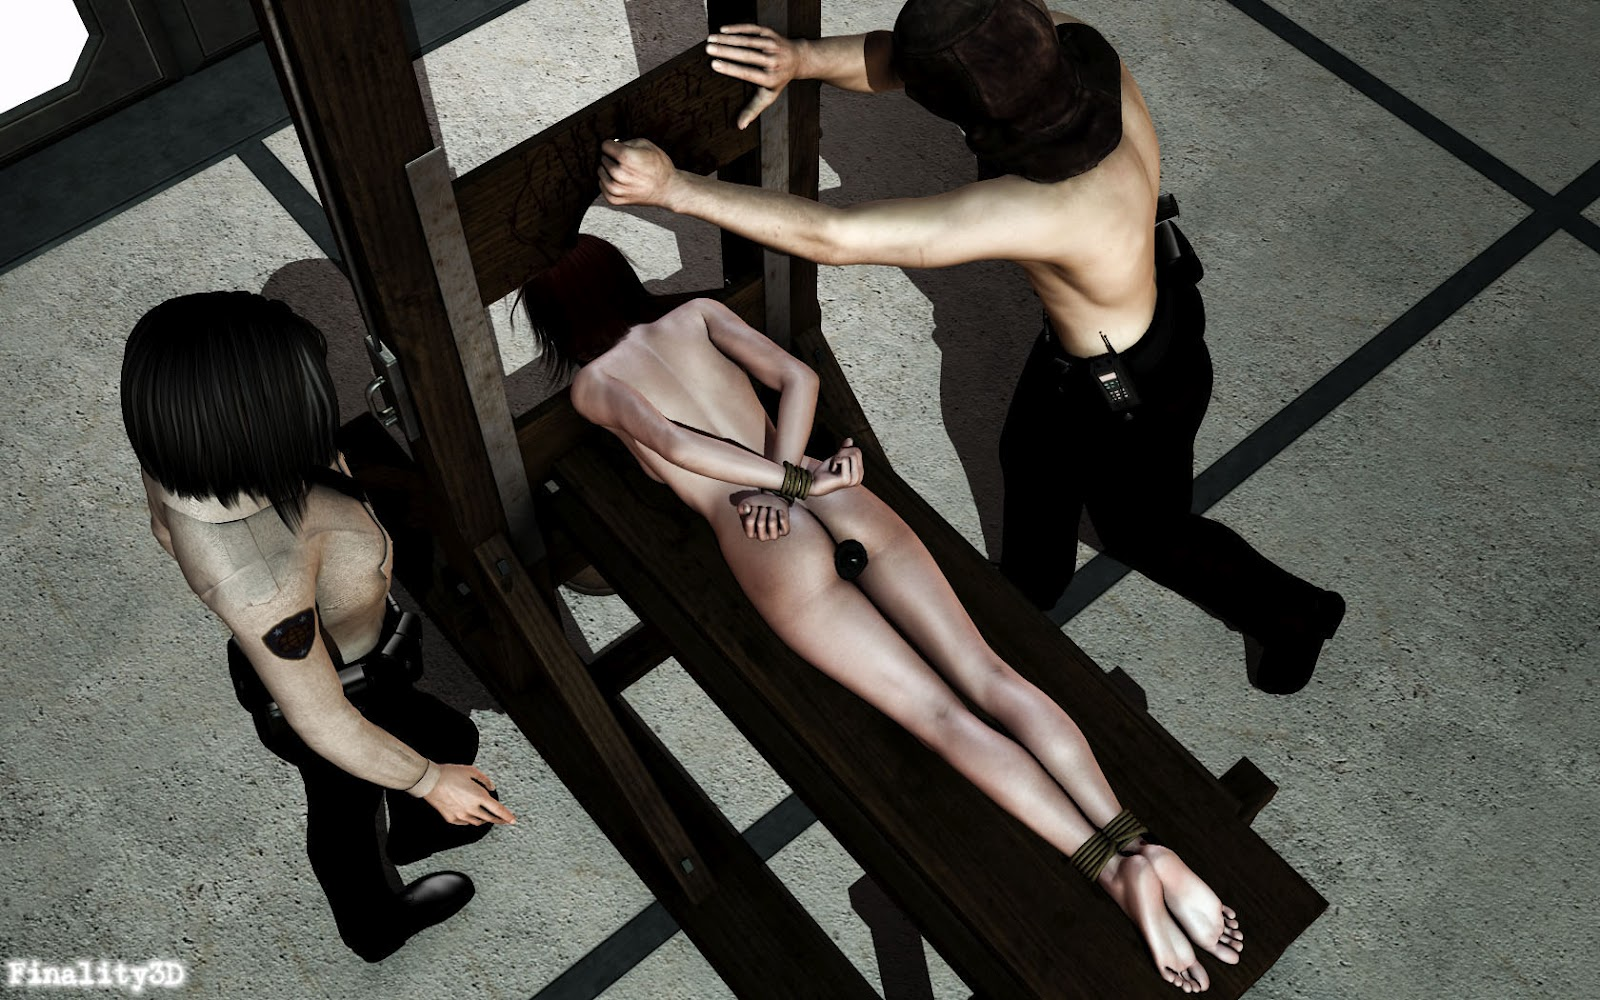 Execution erotic fantasy xxx scene